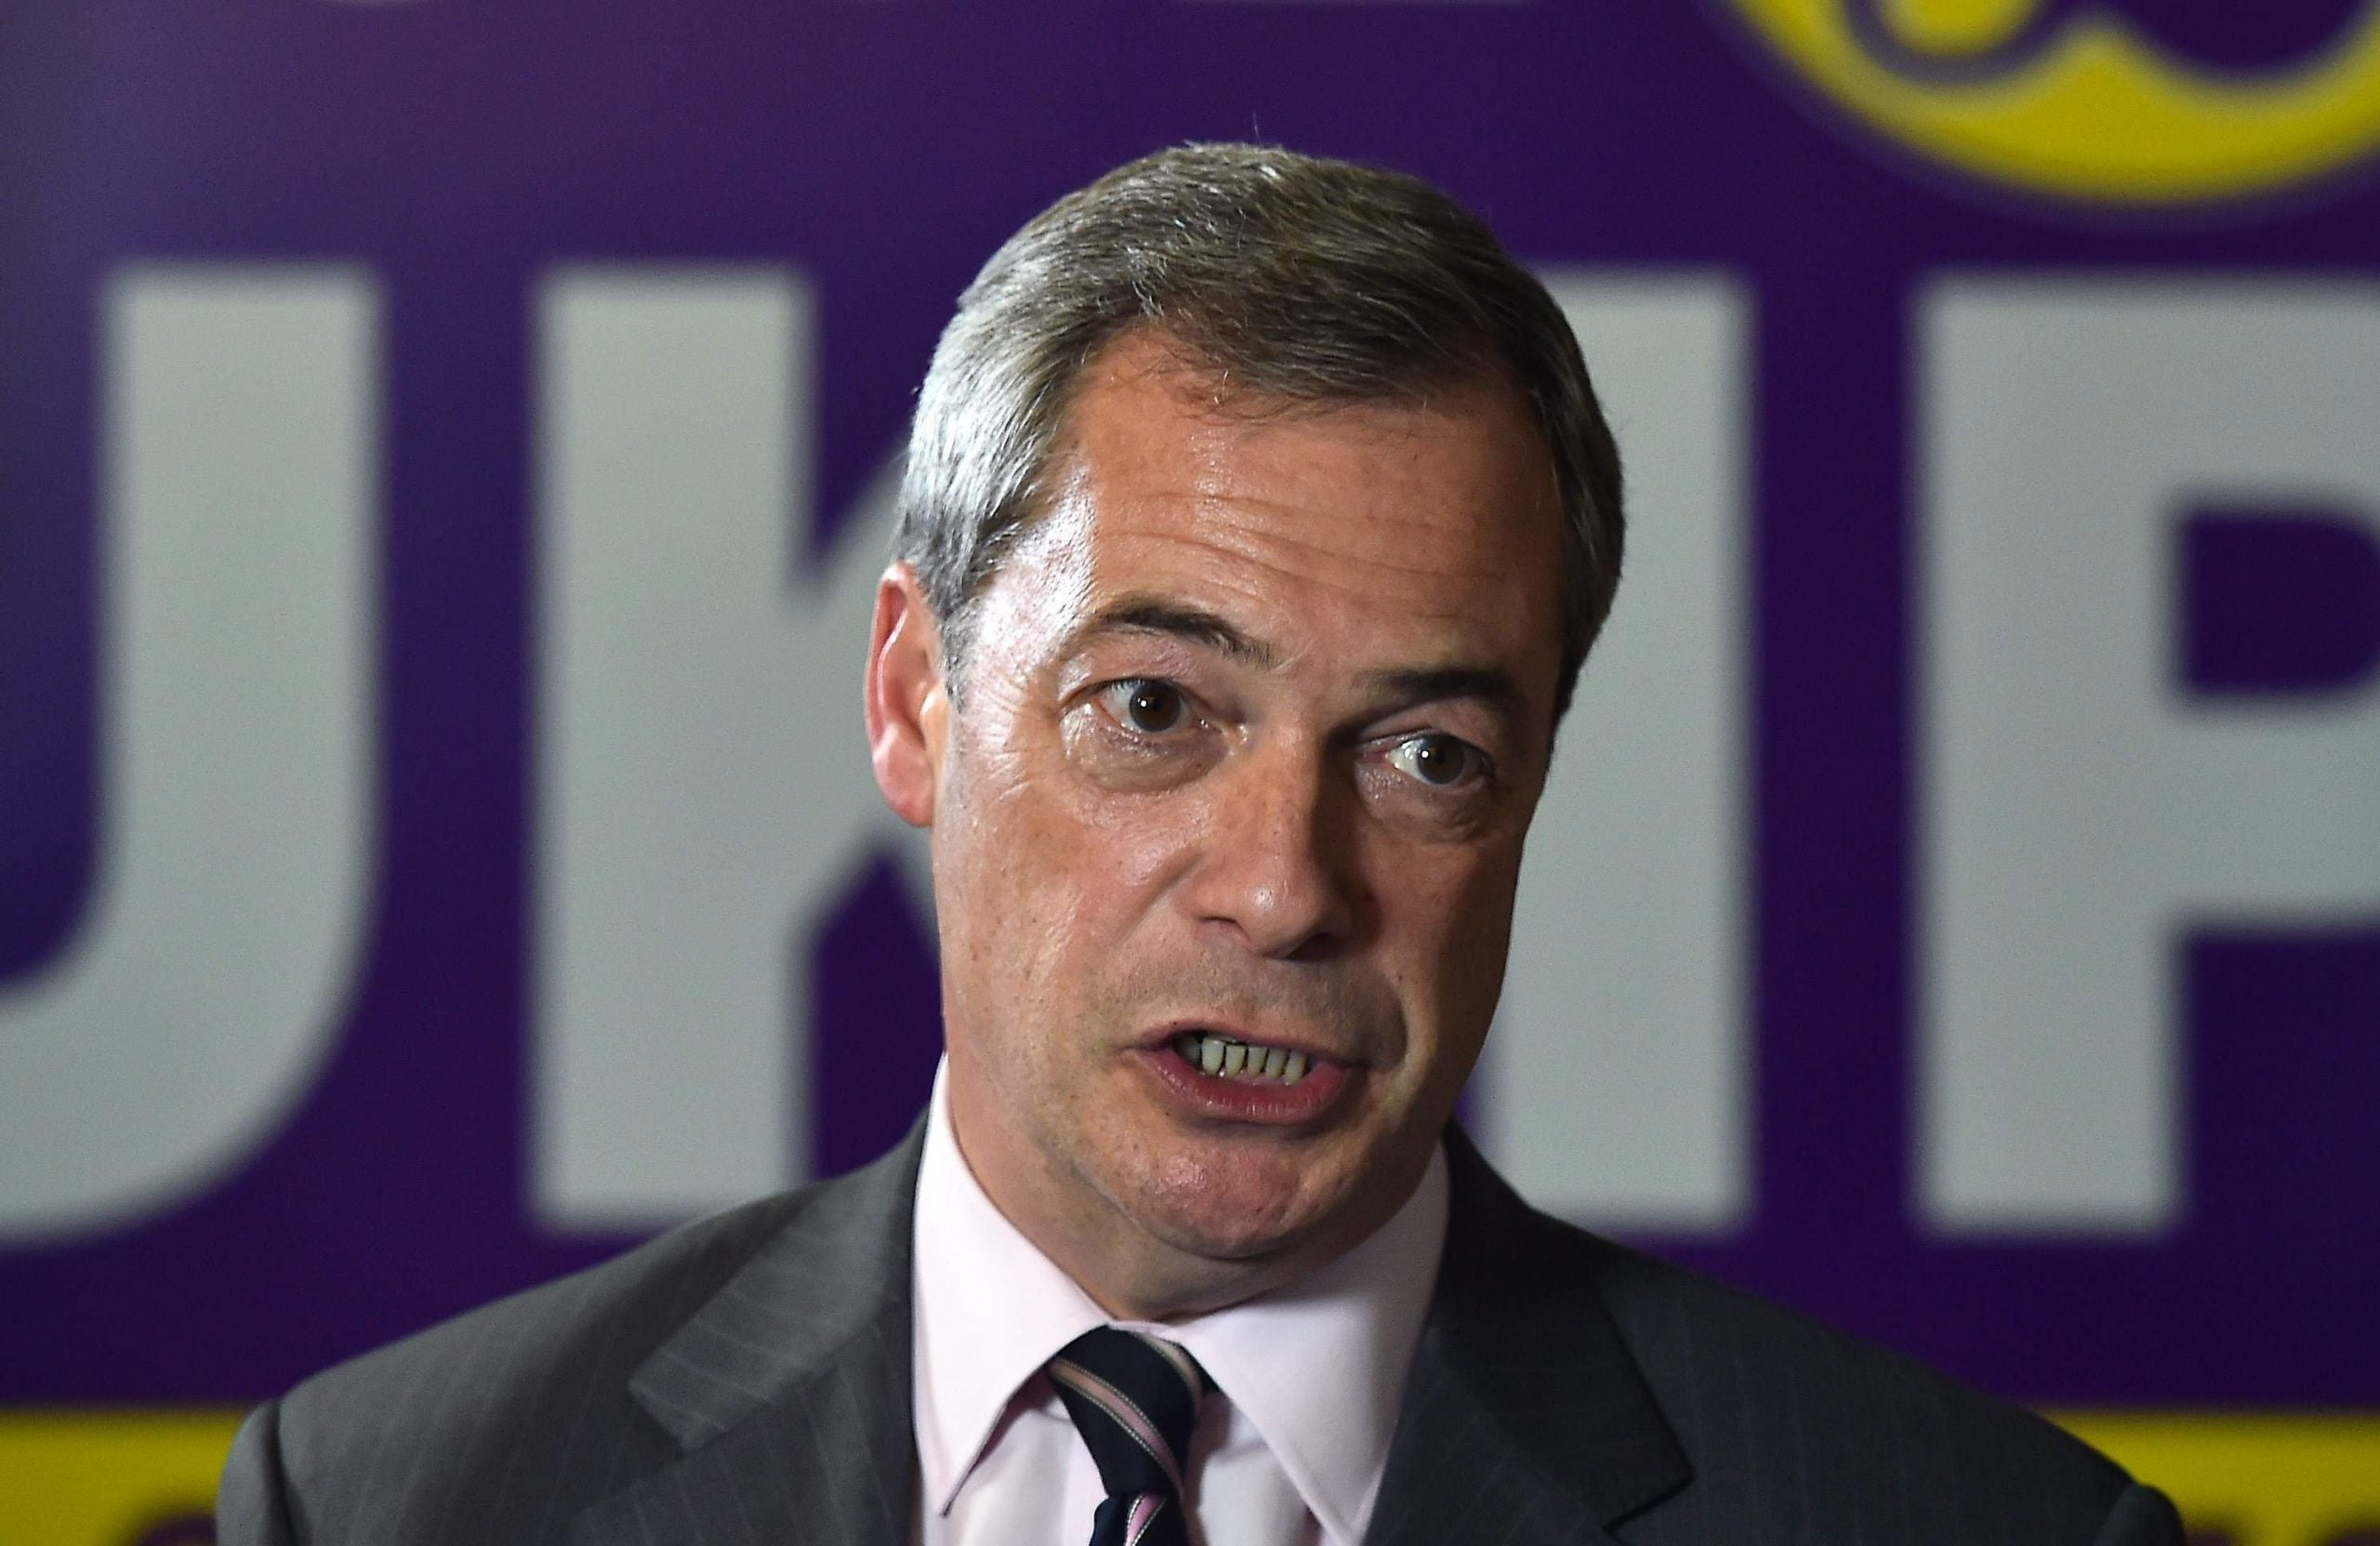 The Tories have ruled out a deal with Ukip - and they're right to do so